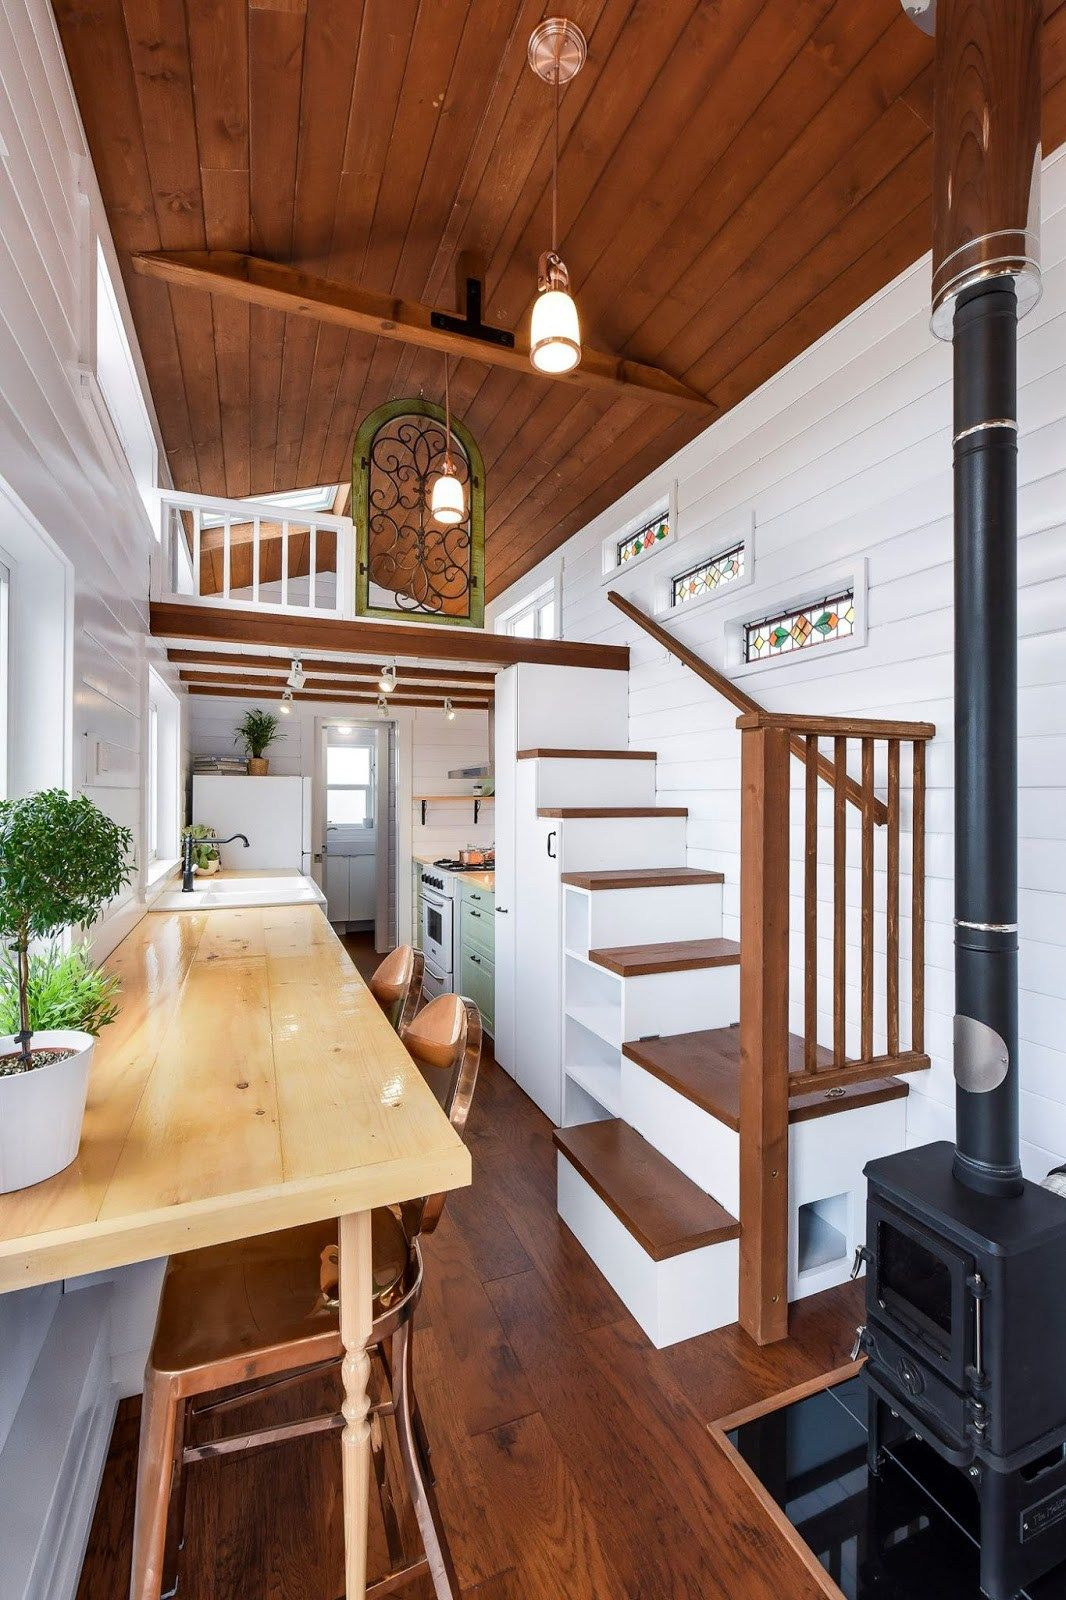 Beautiful 30 Mint Tiny Home On Wheels With Vaulted Ceilings Tiny House Interior Tiny House Living Tiny House Interior Design